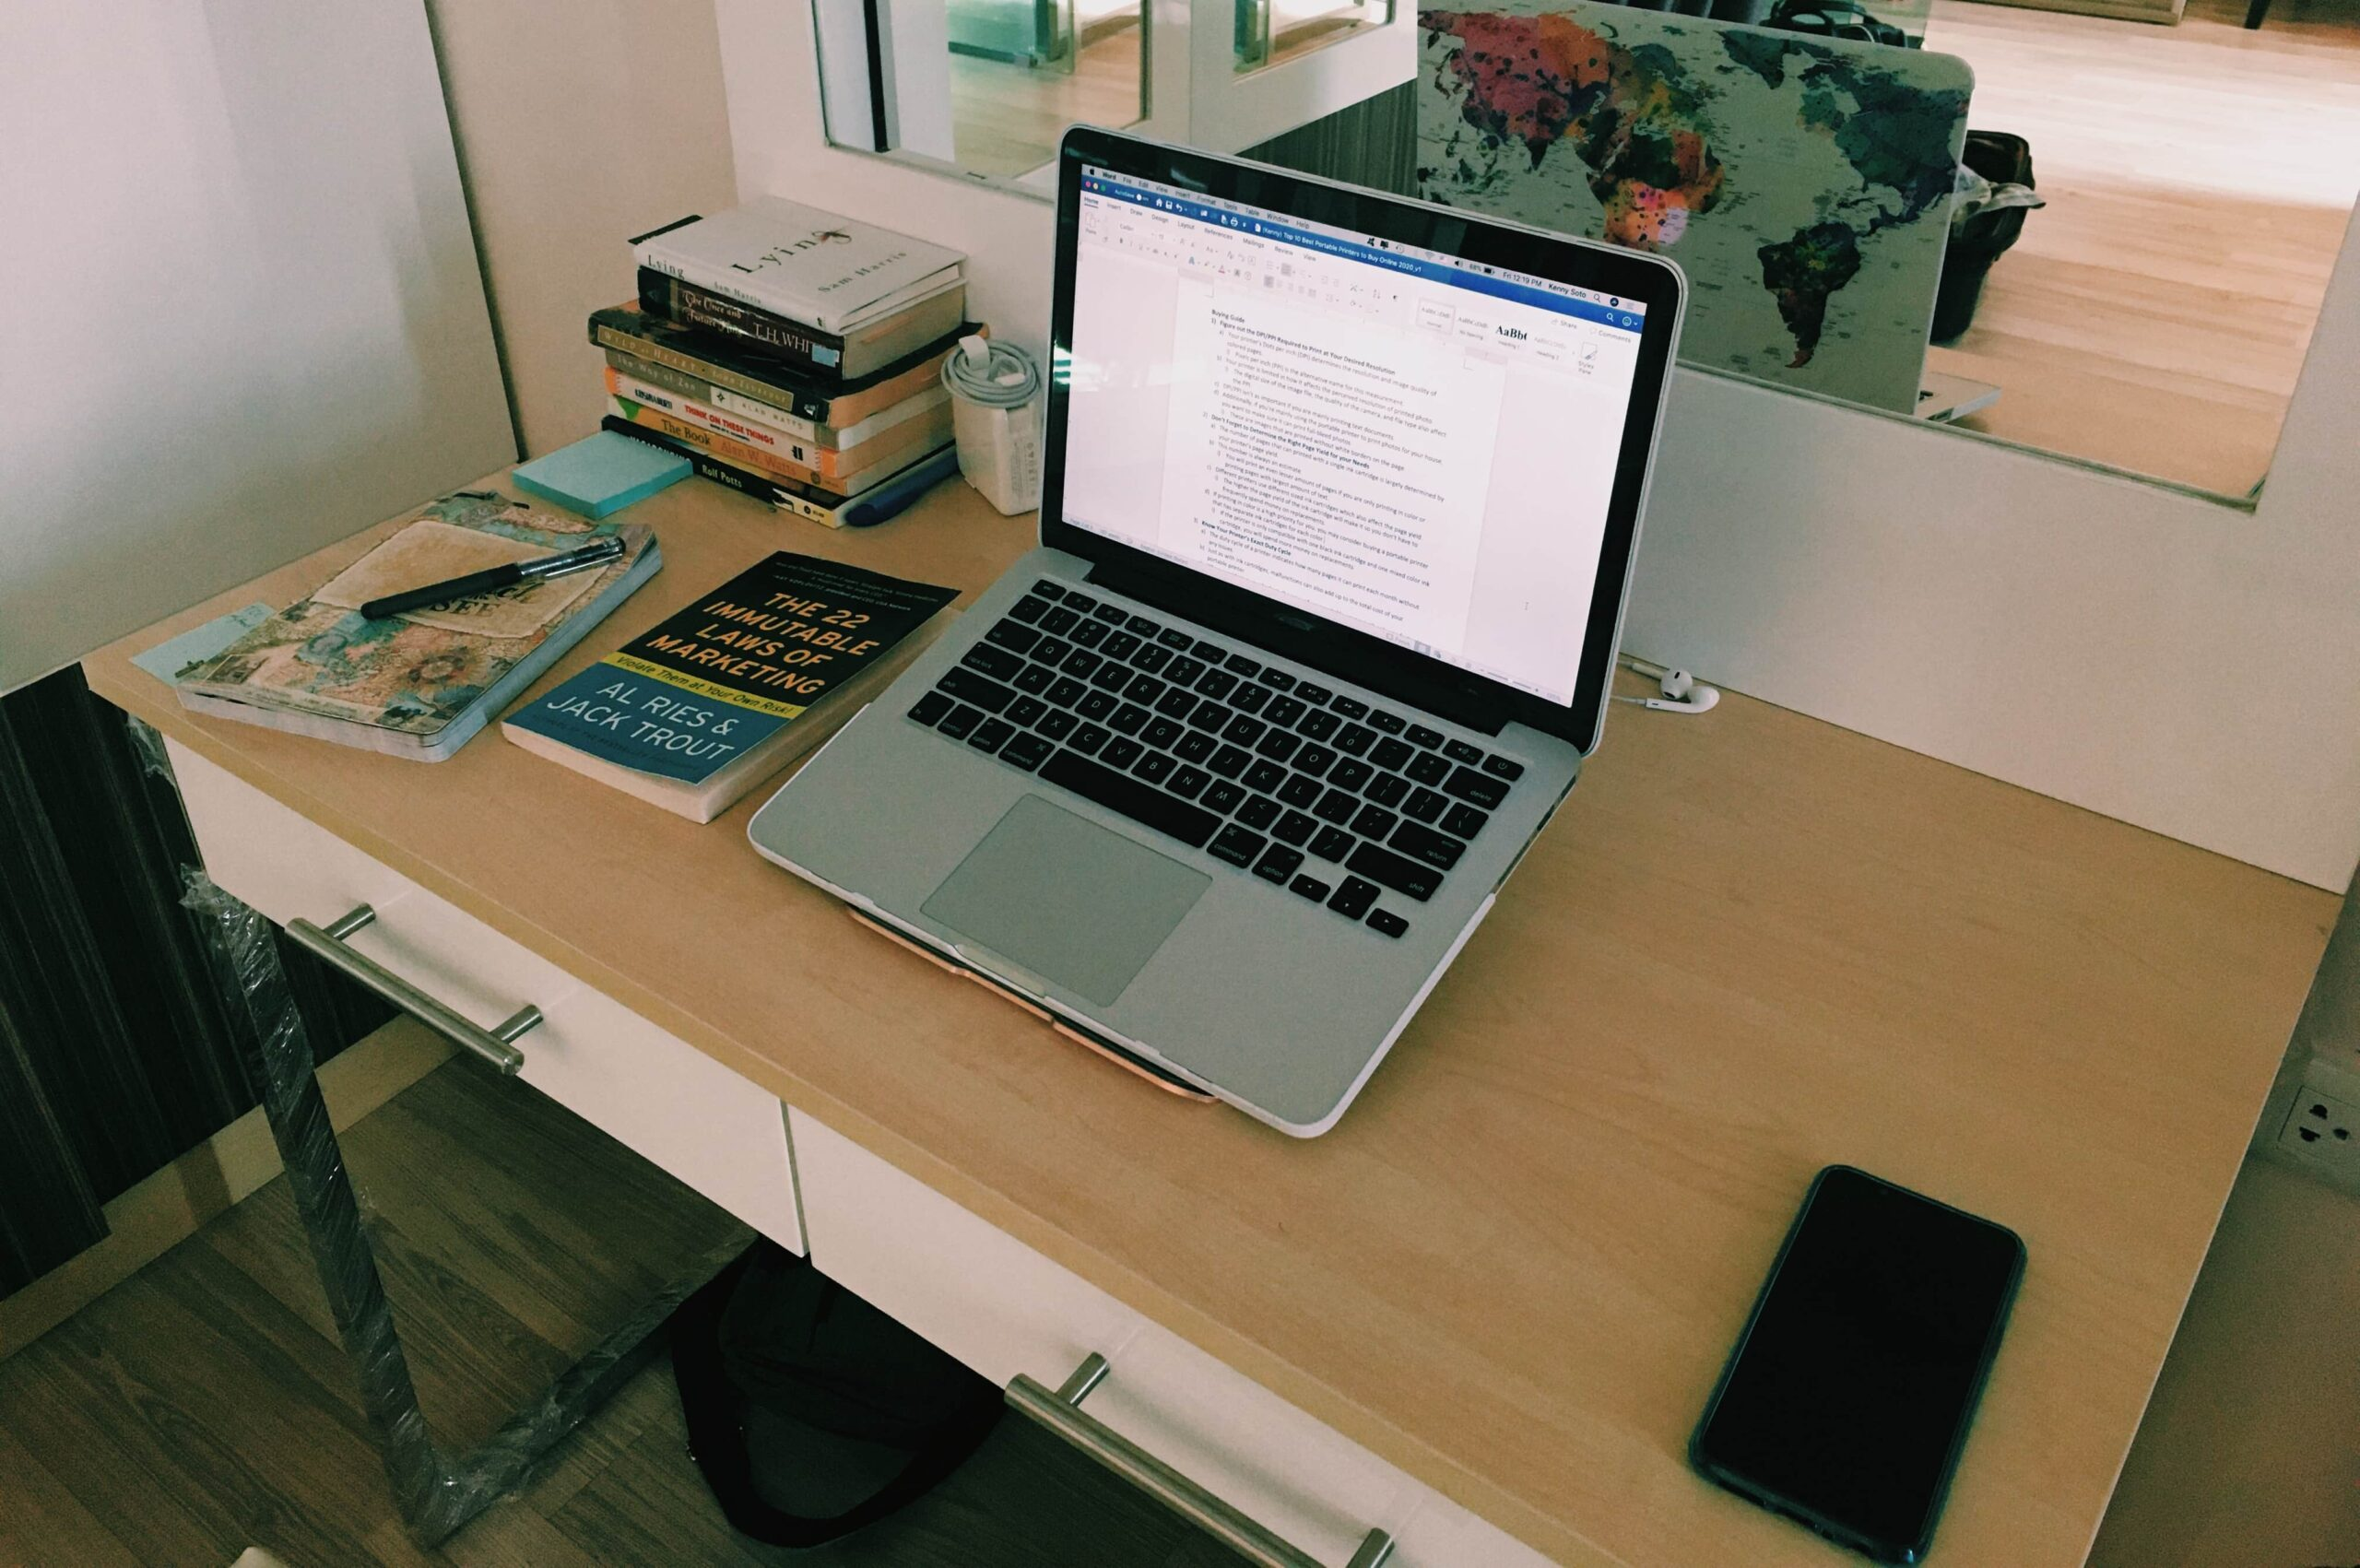 How To Get Remote Work As A Writer (An Opportunity To Make Money While Traveling Or At Home)